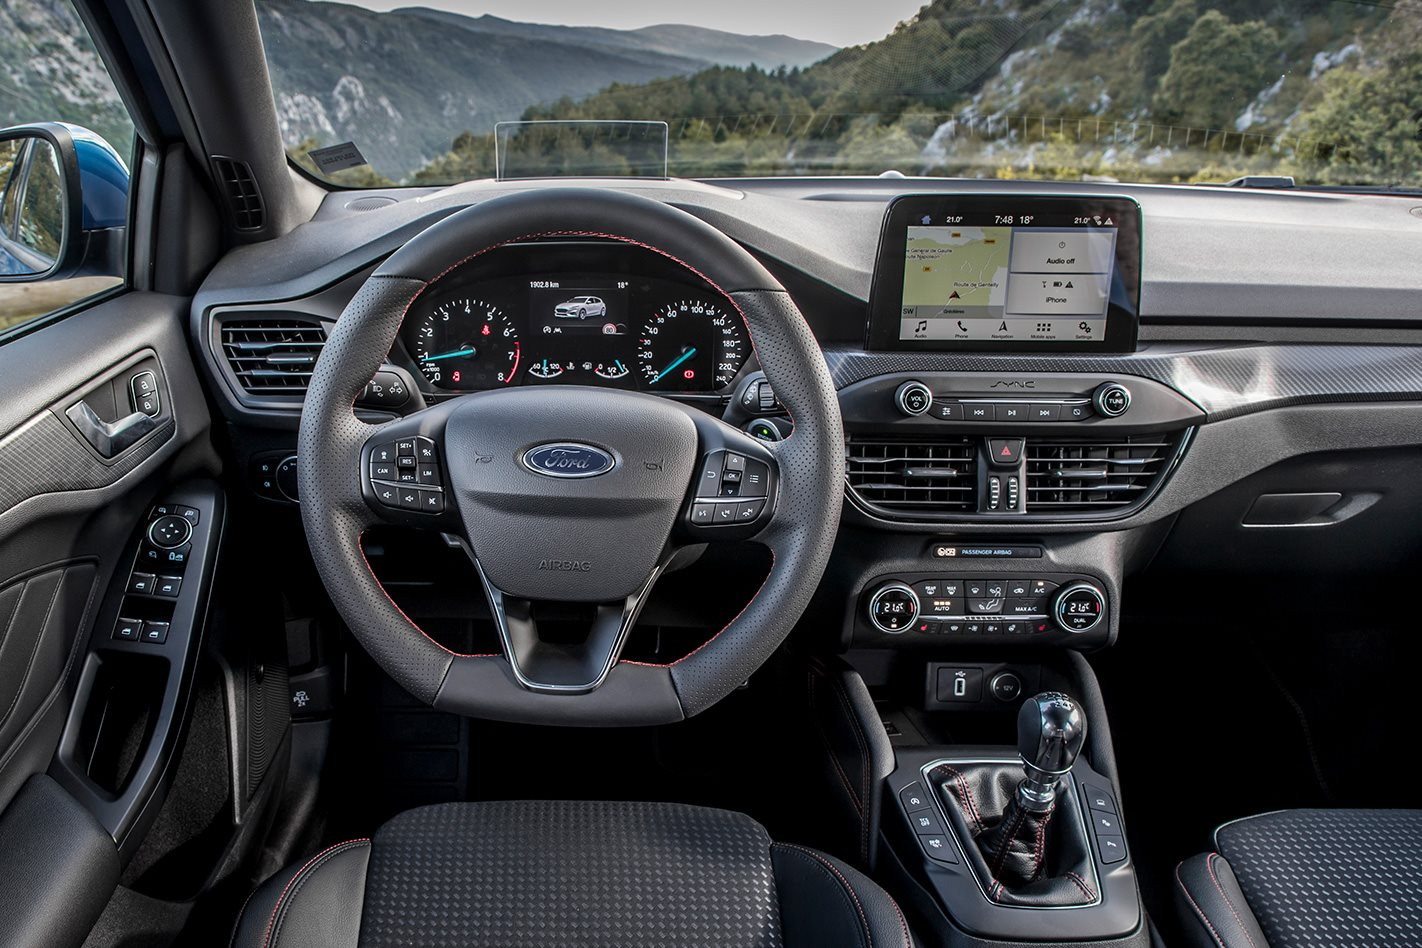 ford focus s 0-100